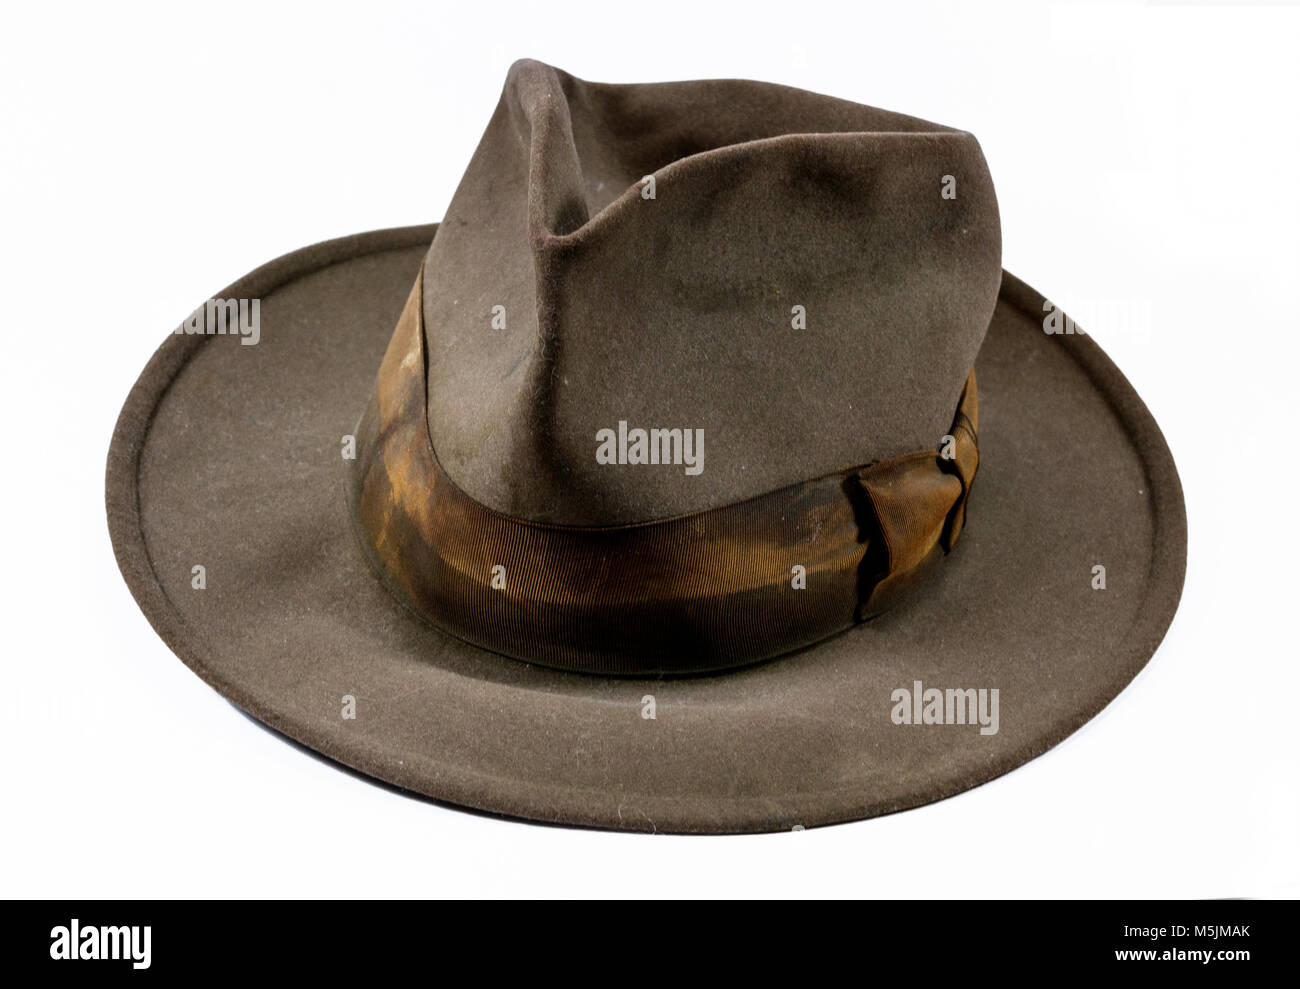 Antique vintage old worn out stained felt hat - Stock Image